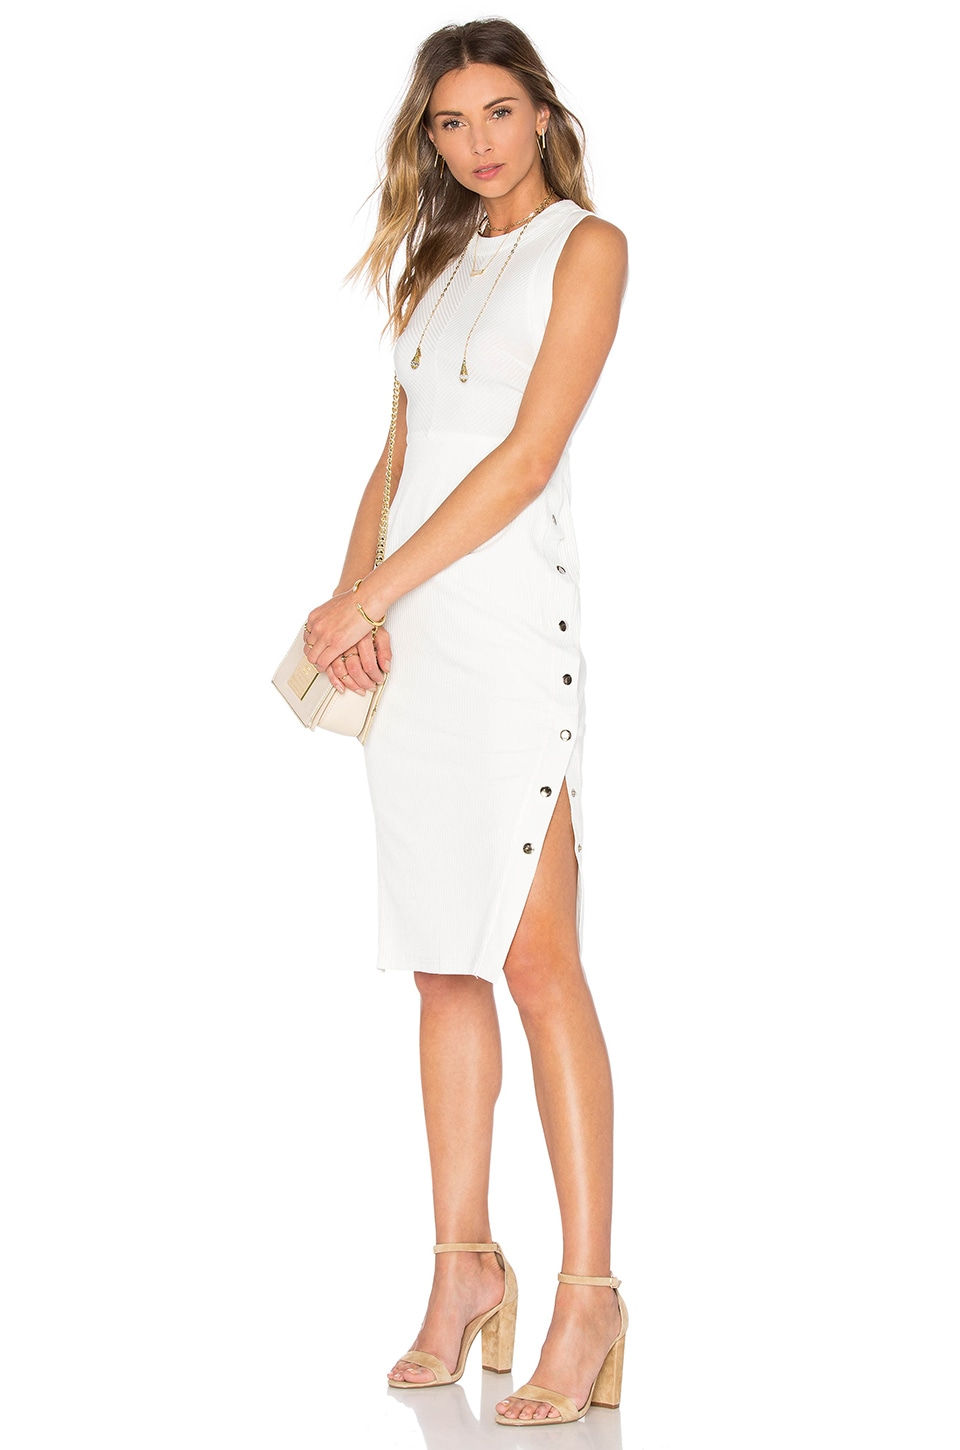 Erikson Studded Dress In Powder by PFEIFFER